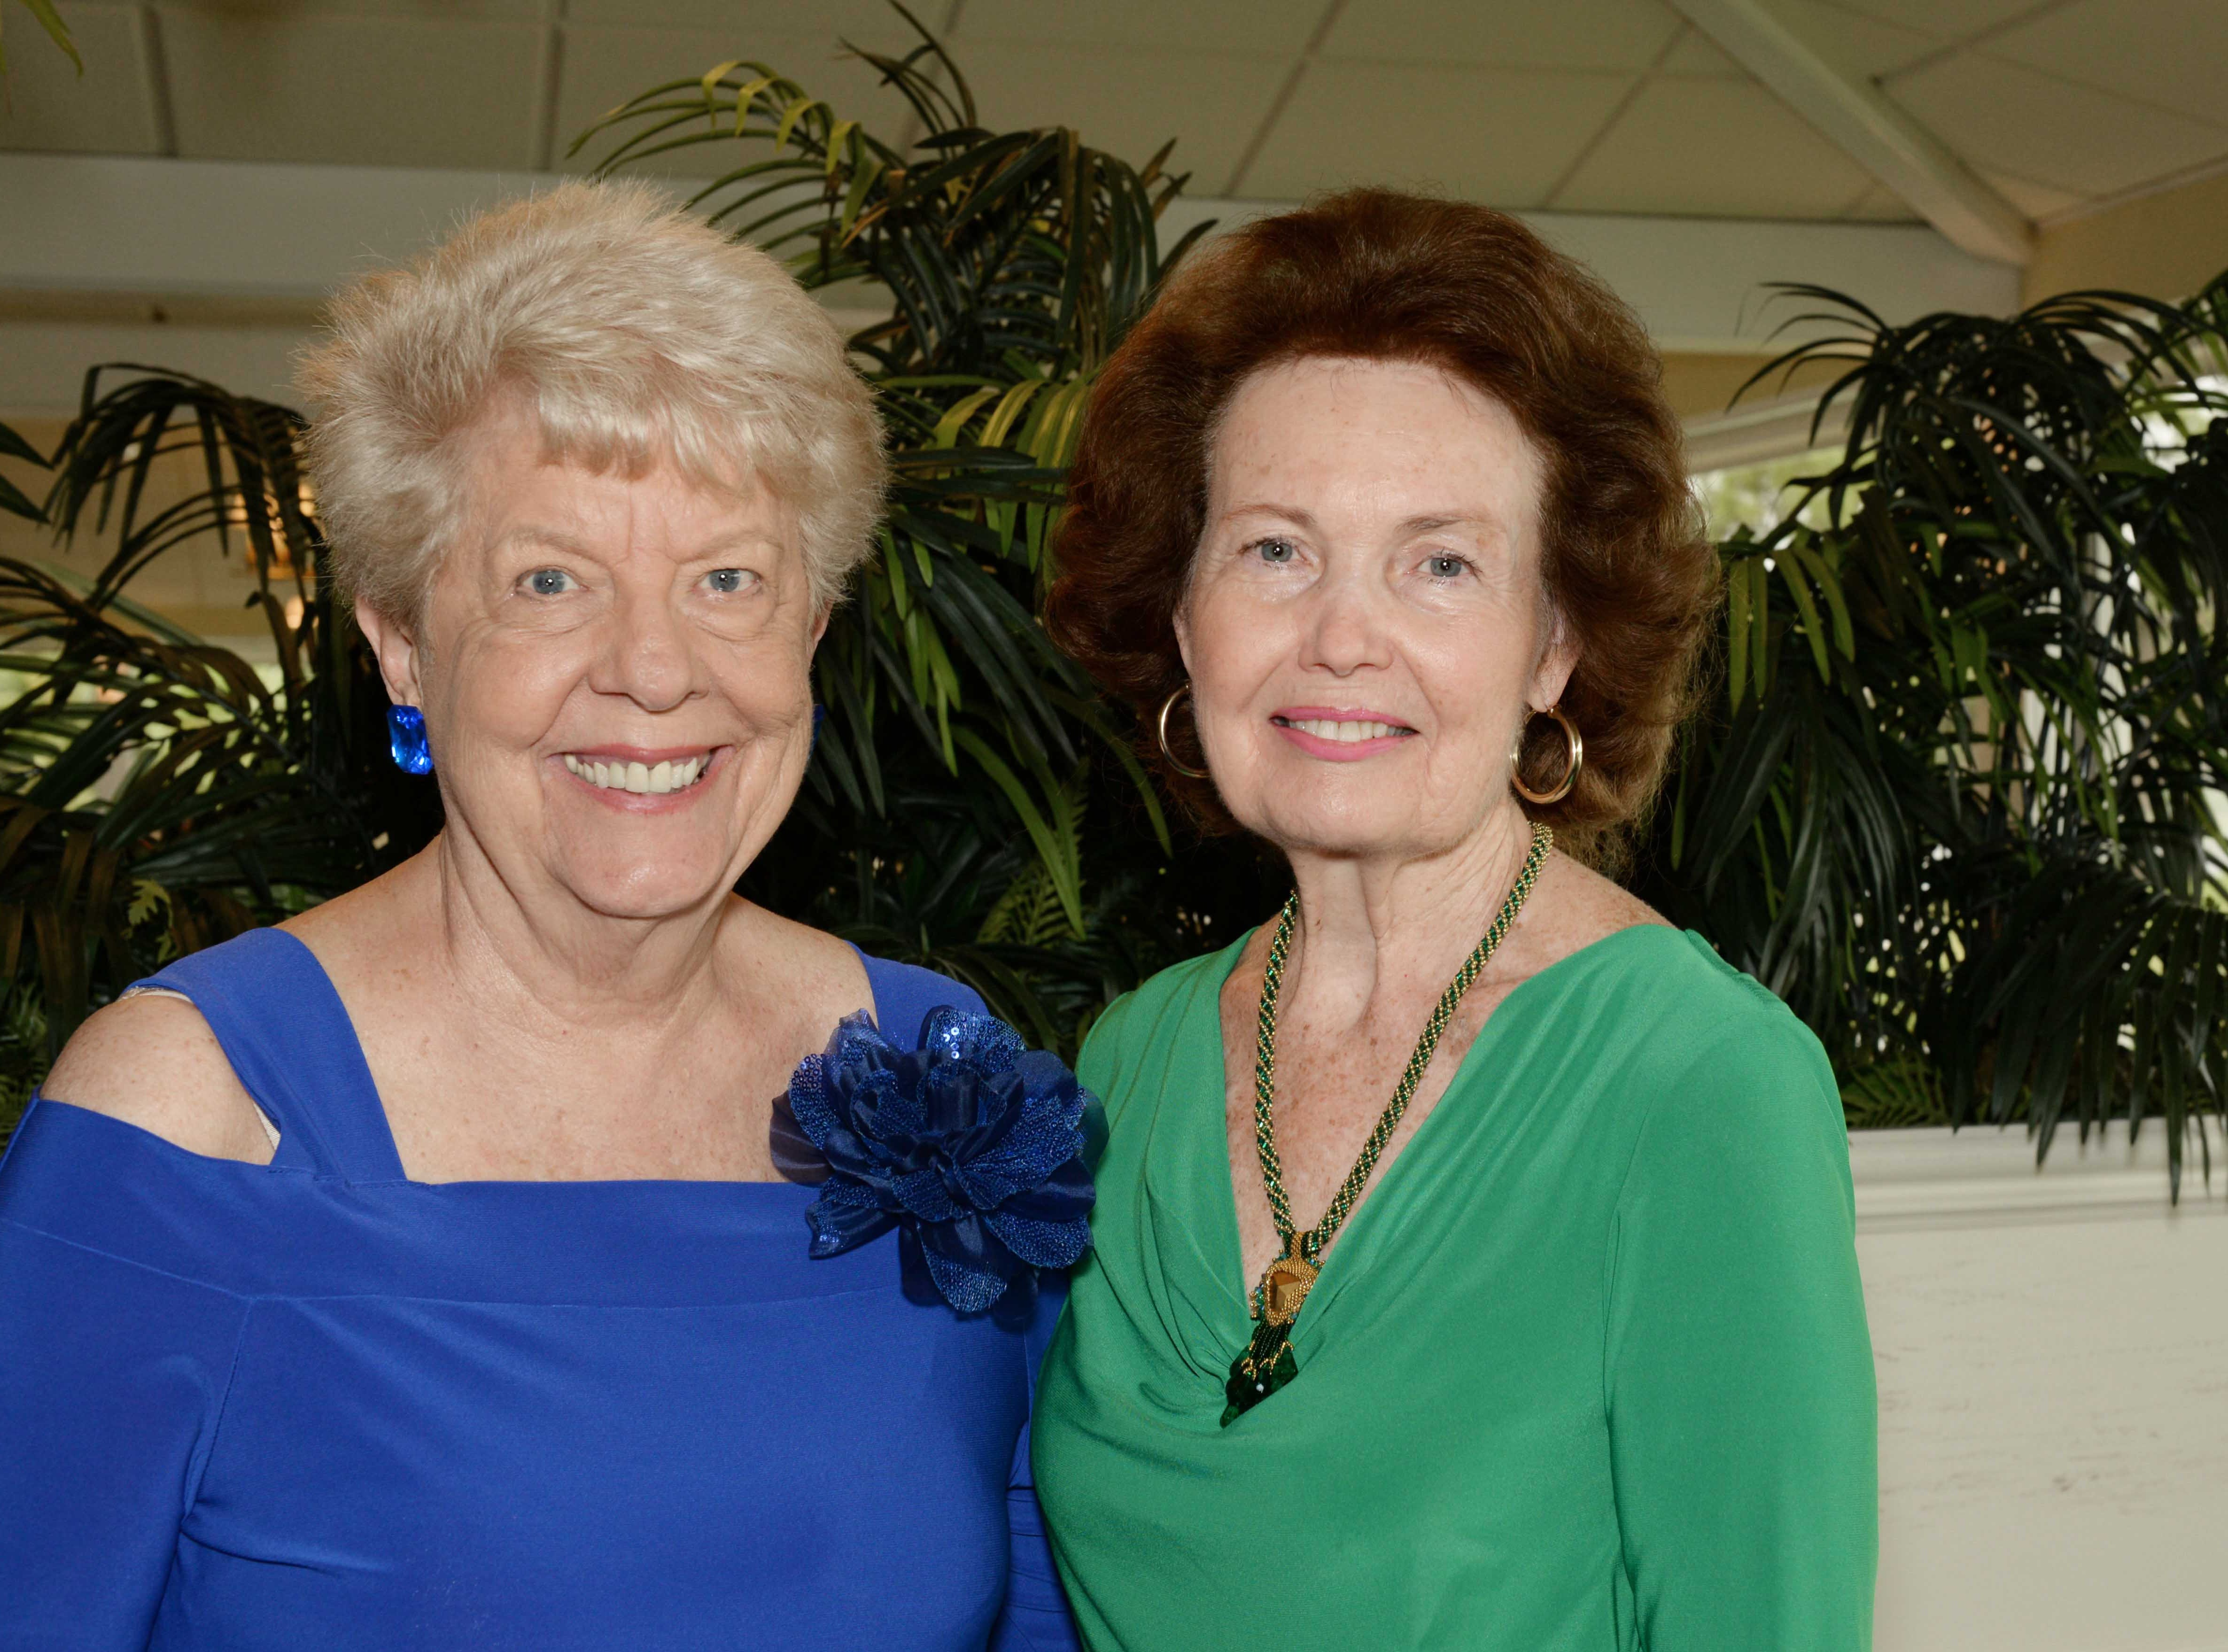 Thelma Isaksen, left, and Betty Mulligan at the 45th anniversary party of the American Association of University Women Stuart Branch.